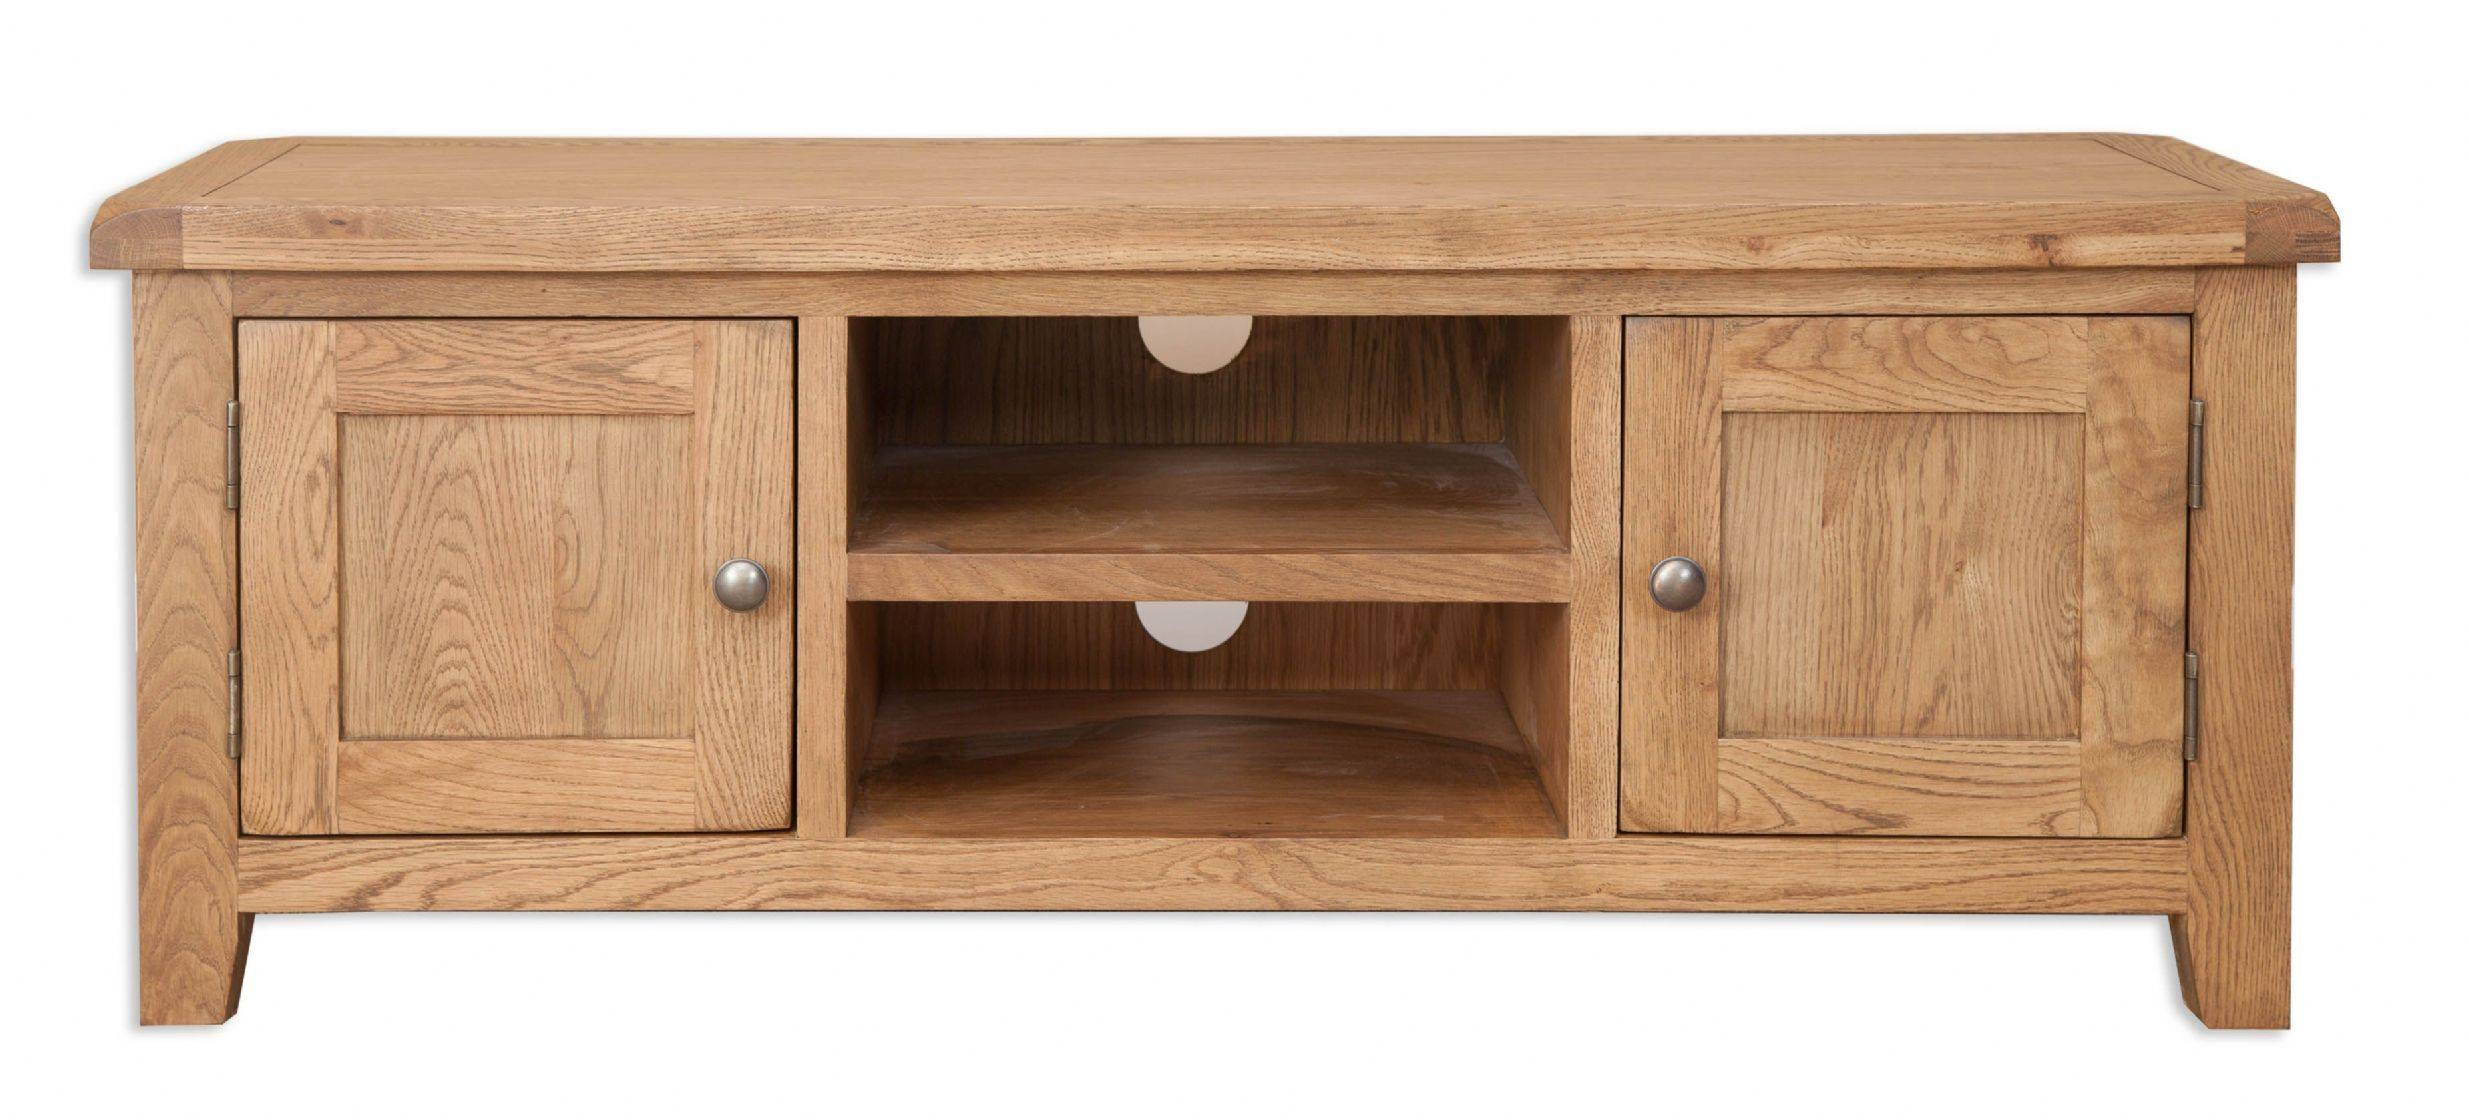 Hampton Natural Chunky Solid Oak Widescreen Tv Dvd Hifi Cabinet throughout Chunky Oak Tv Unit (Image 6 of 15)